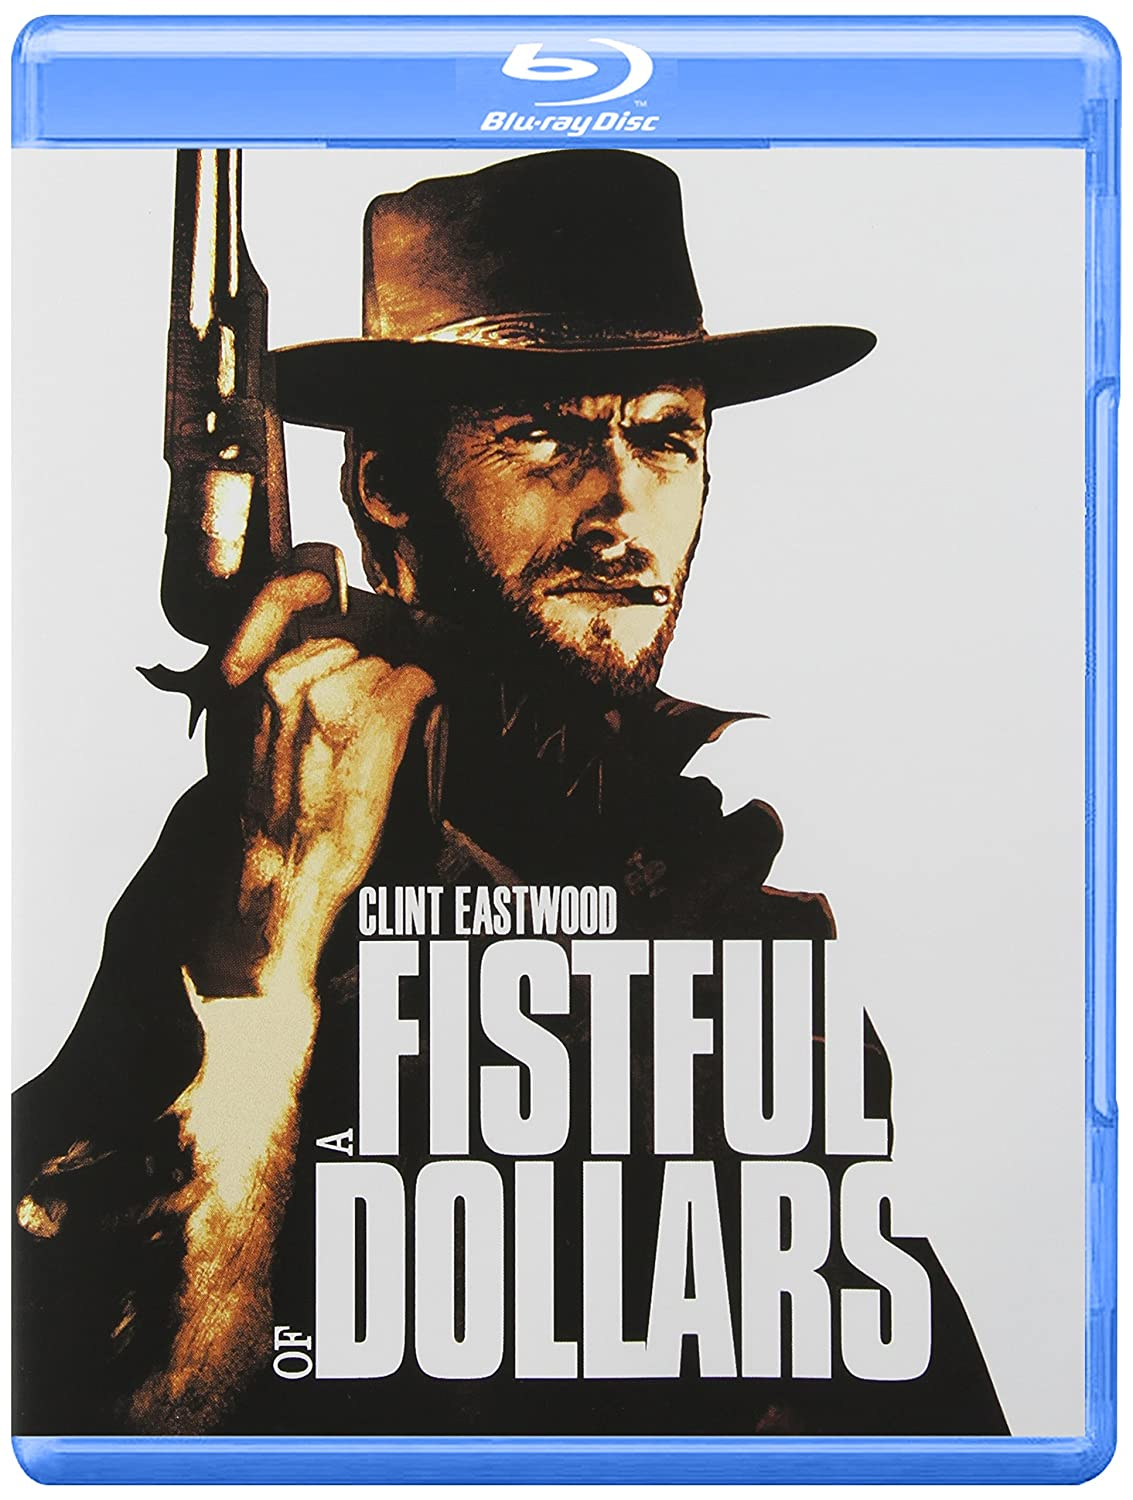 A fistful of dollars blu ray